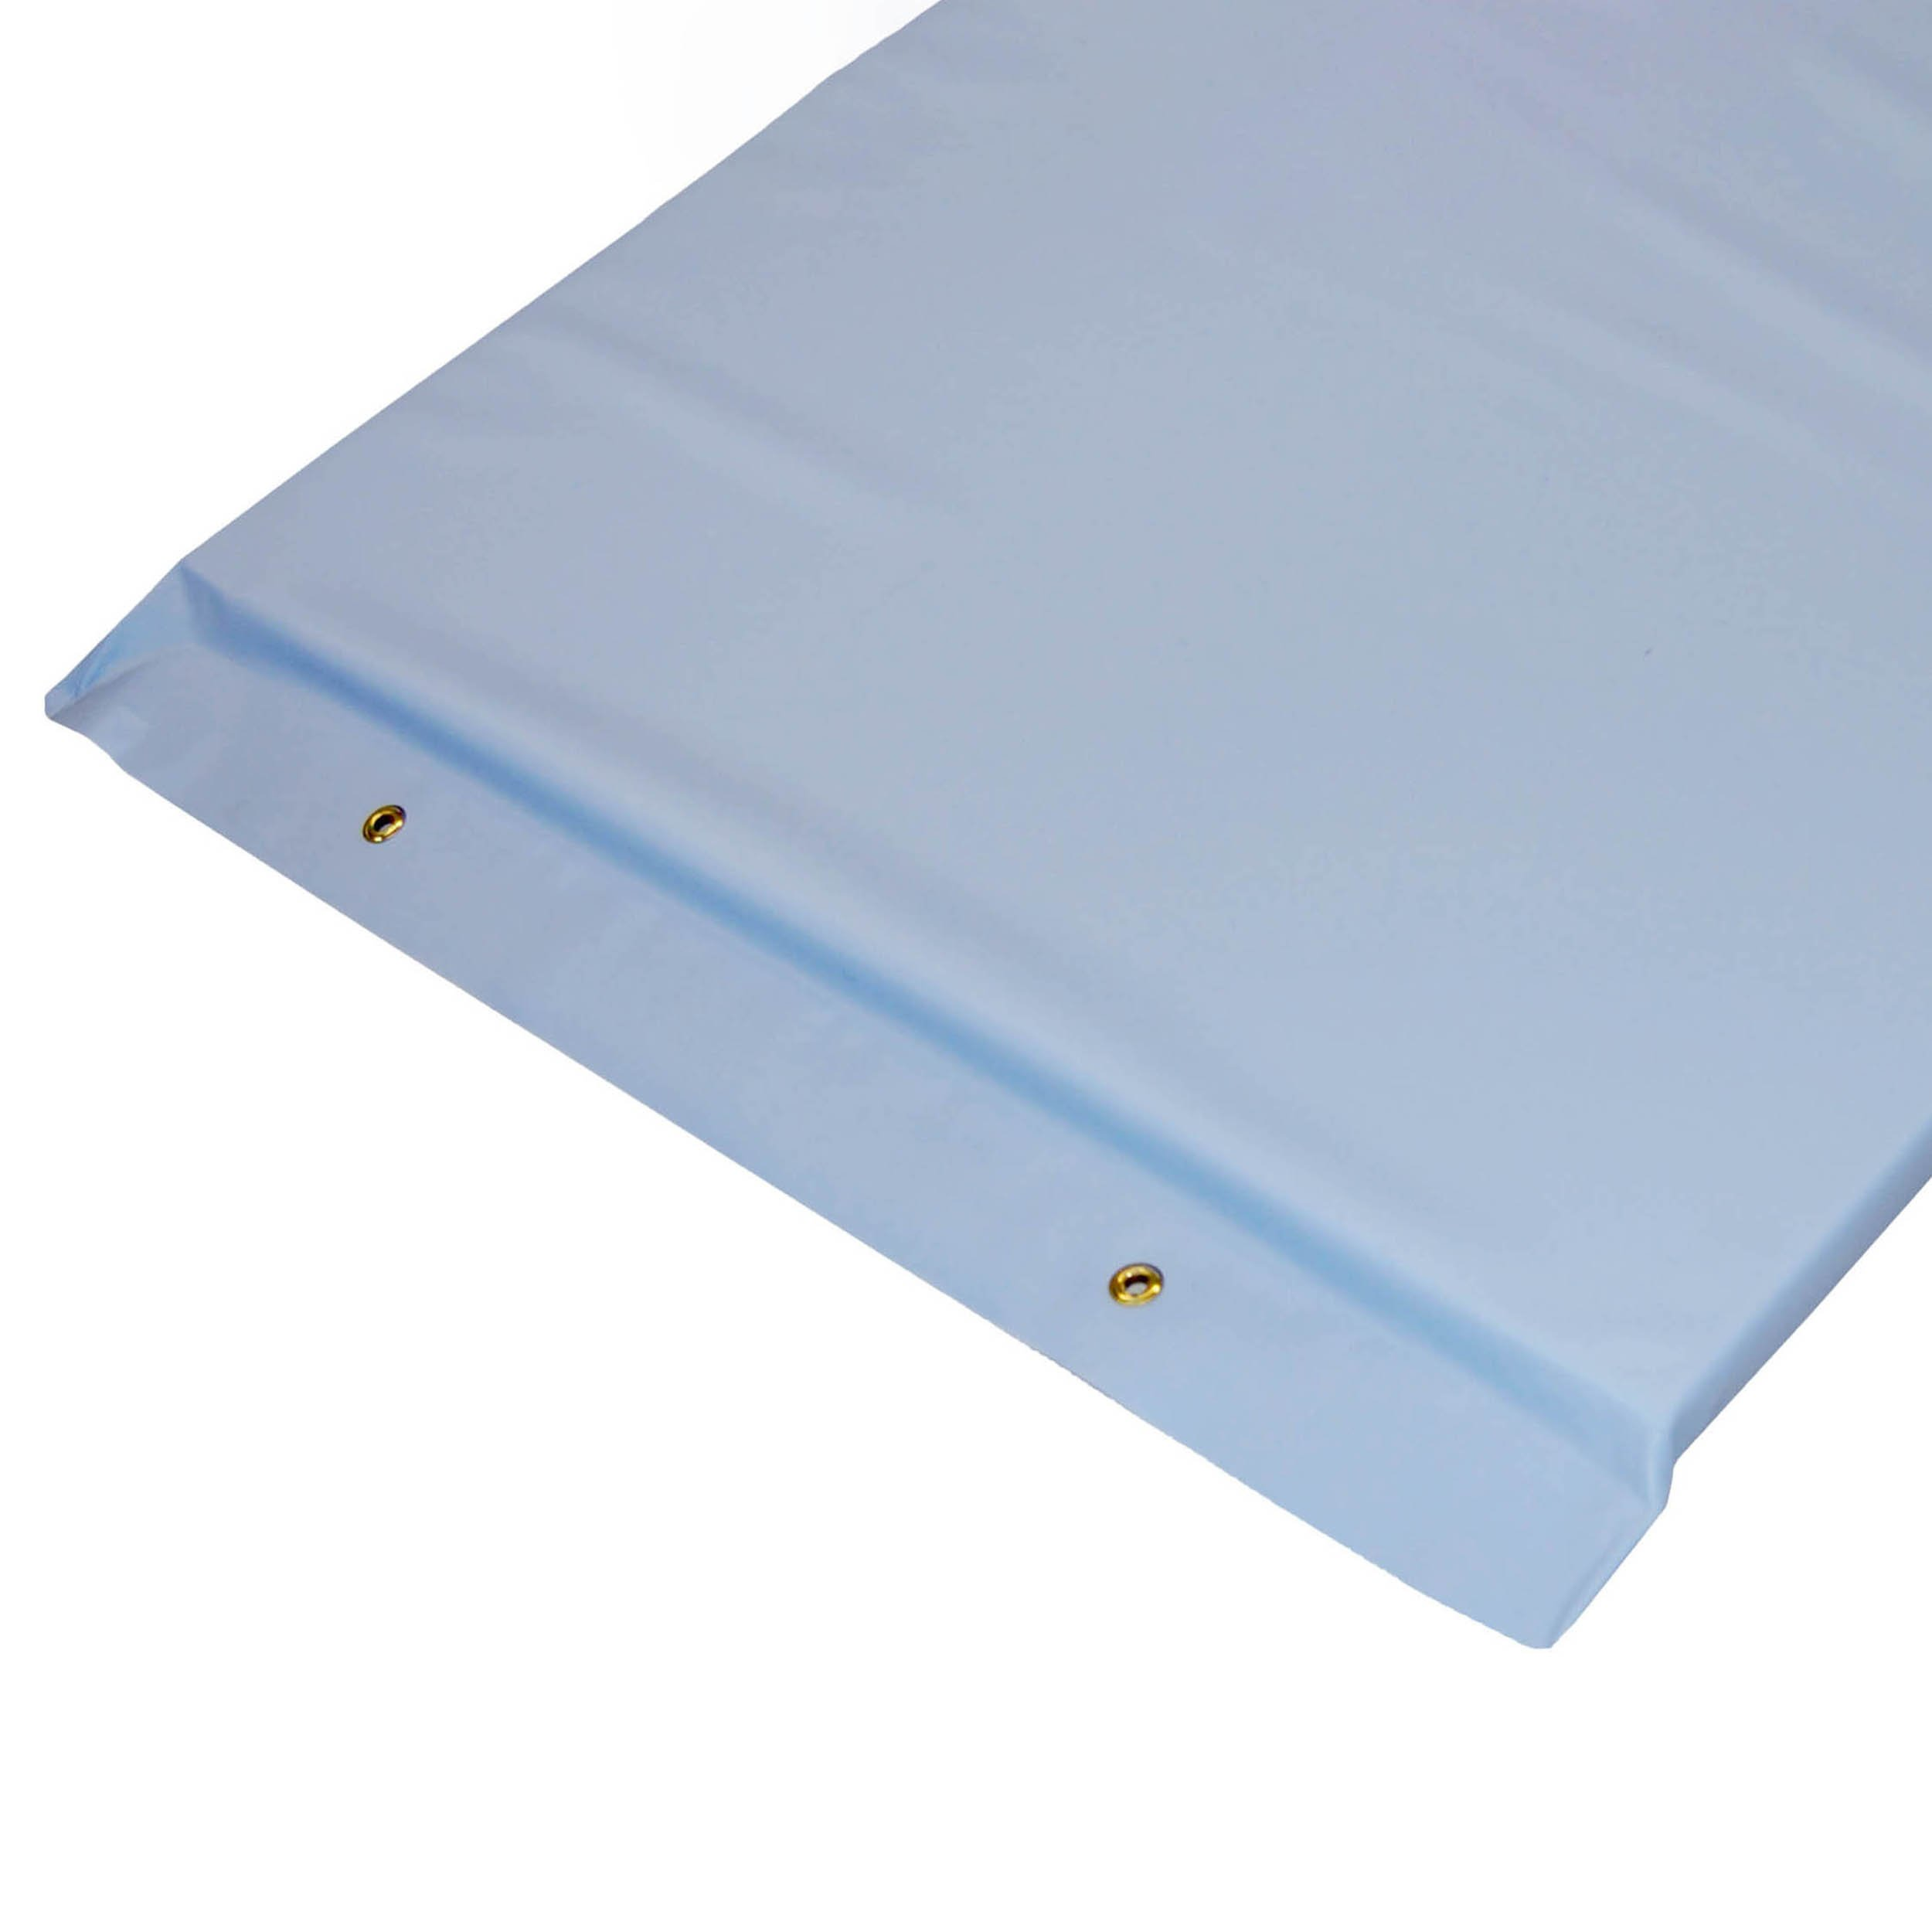 Economy Standard Plus Radiolucent X-Ray Firm Foam Table Pad - Light Blue Vinyl, With Grommets 80